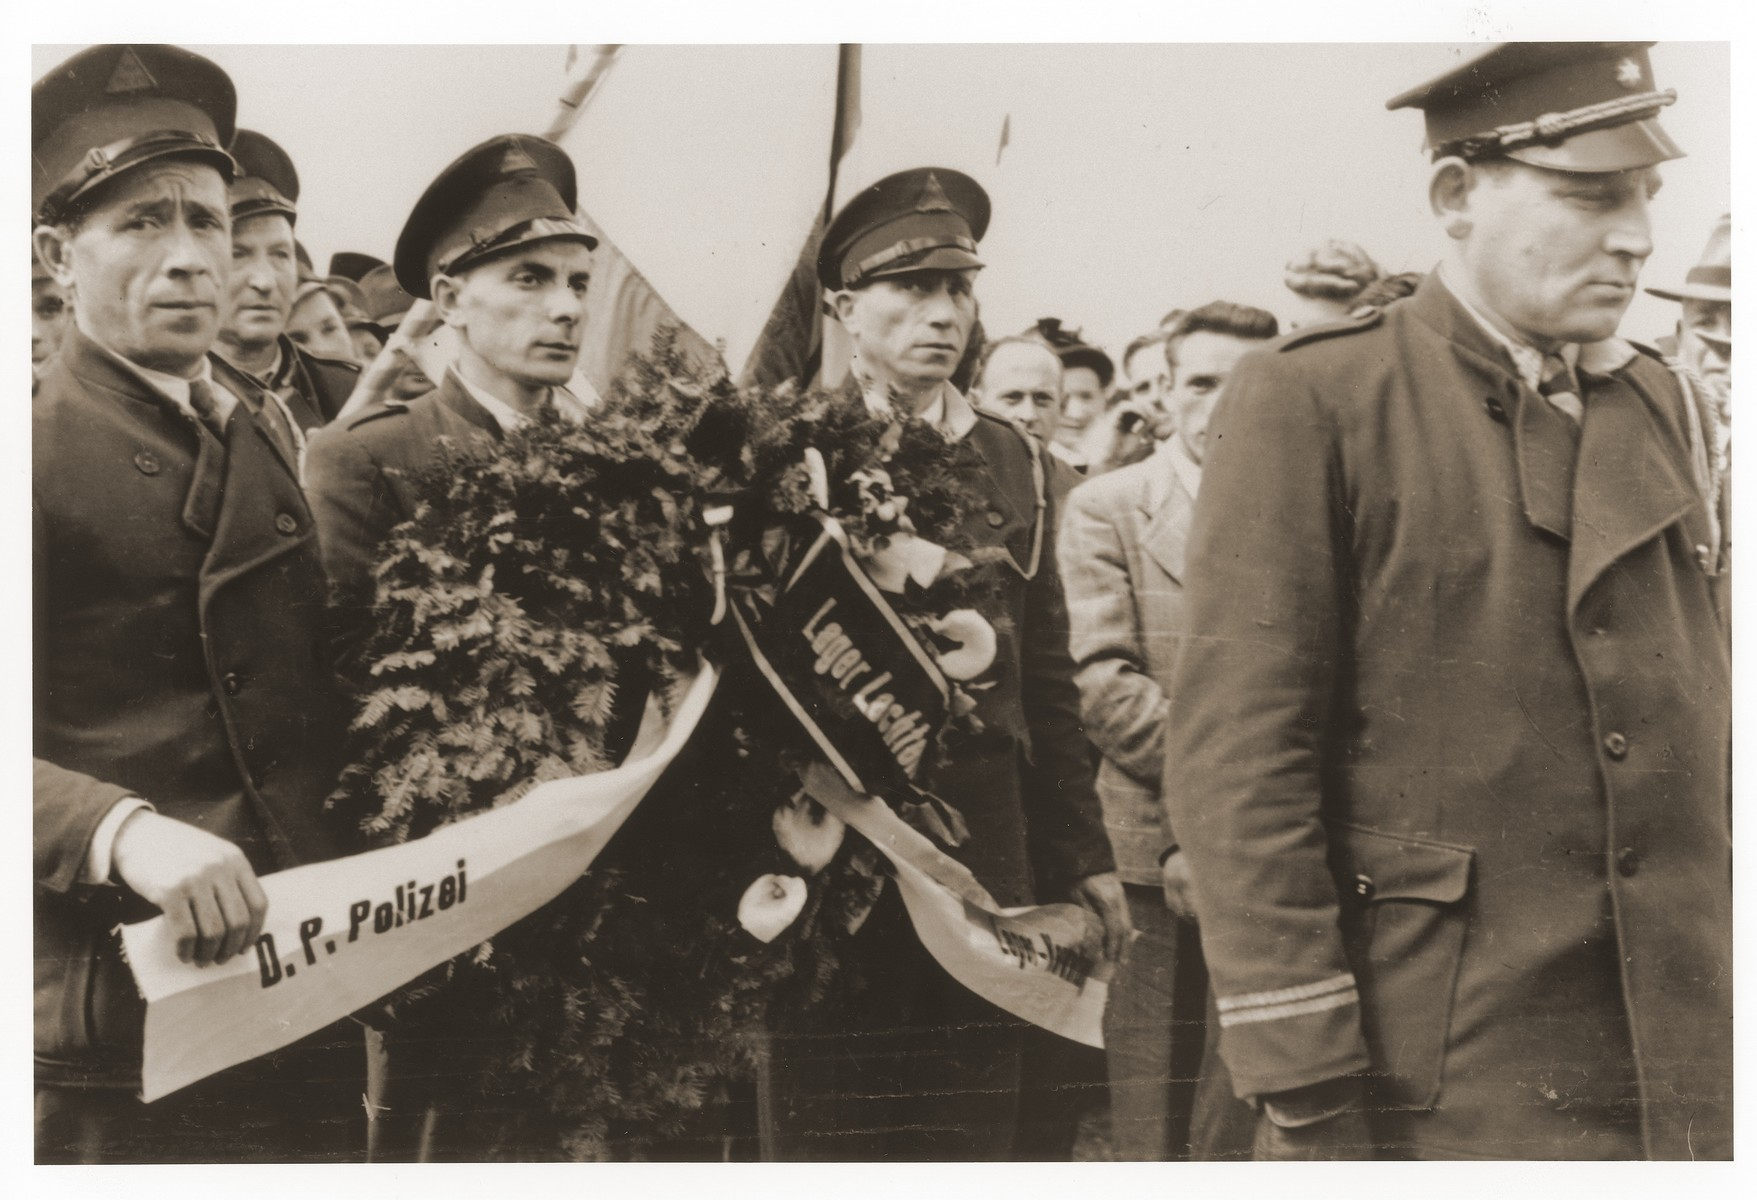 DP police from the Lechfeld displaced persons camp carry a wreath to the site of a memorial to Jewish victims at the Dachau concentration camp.